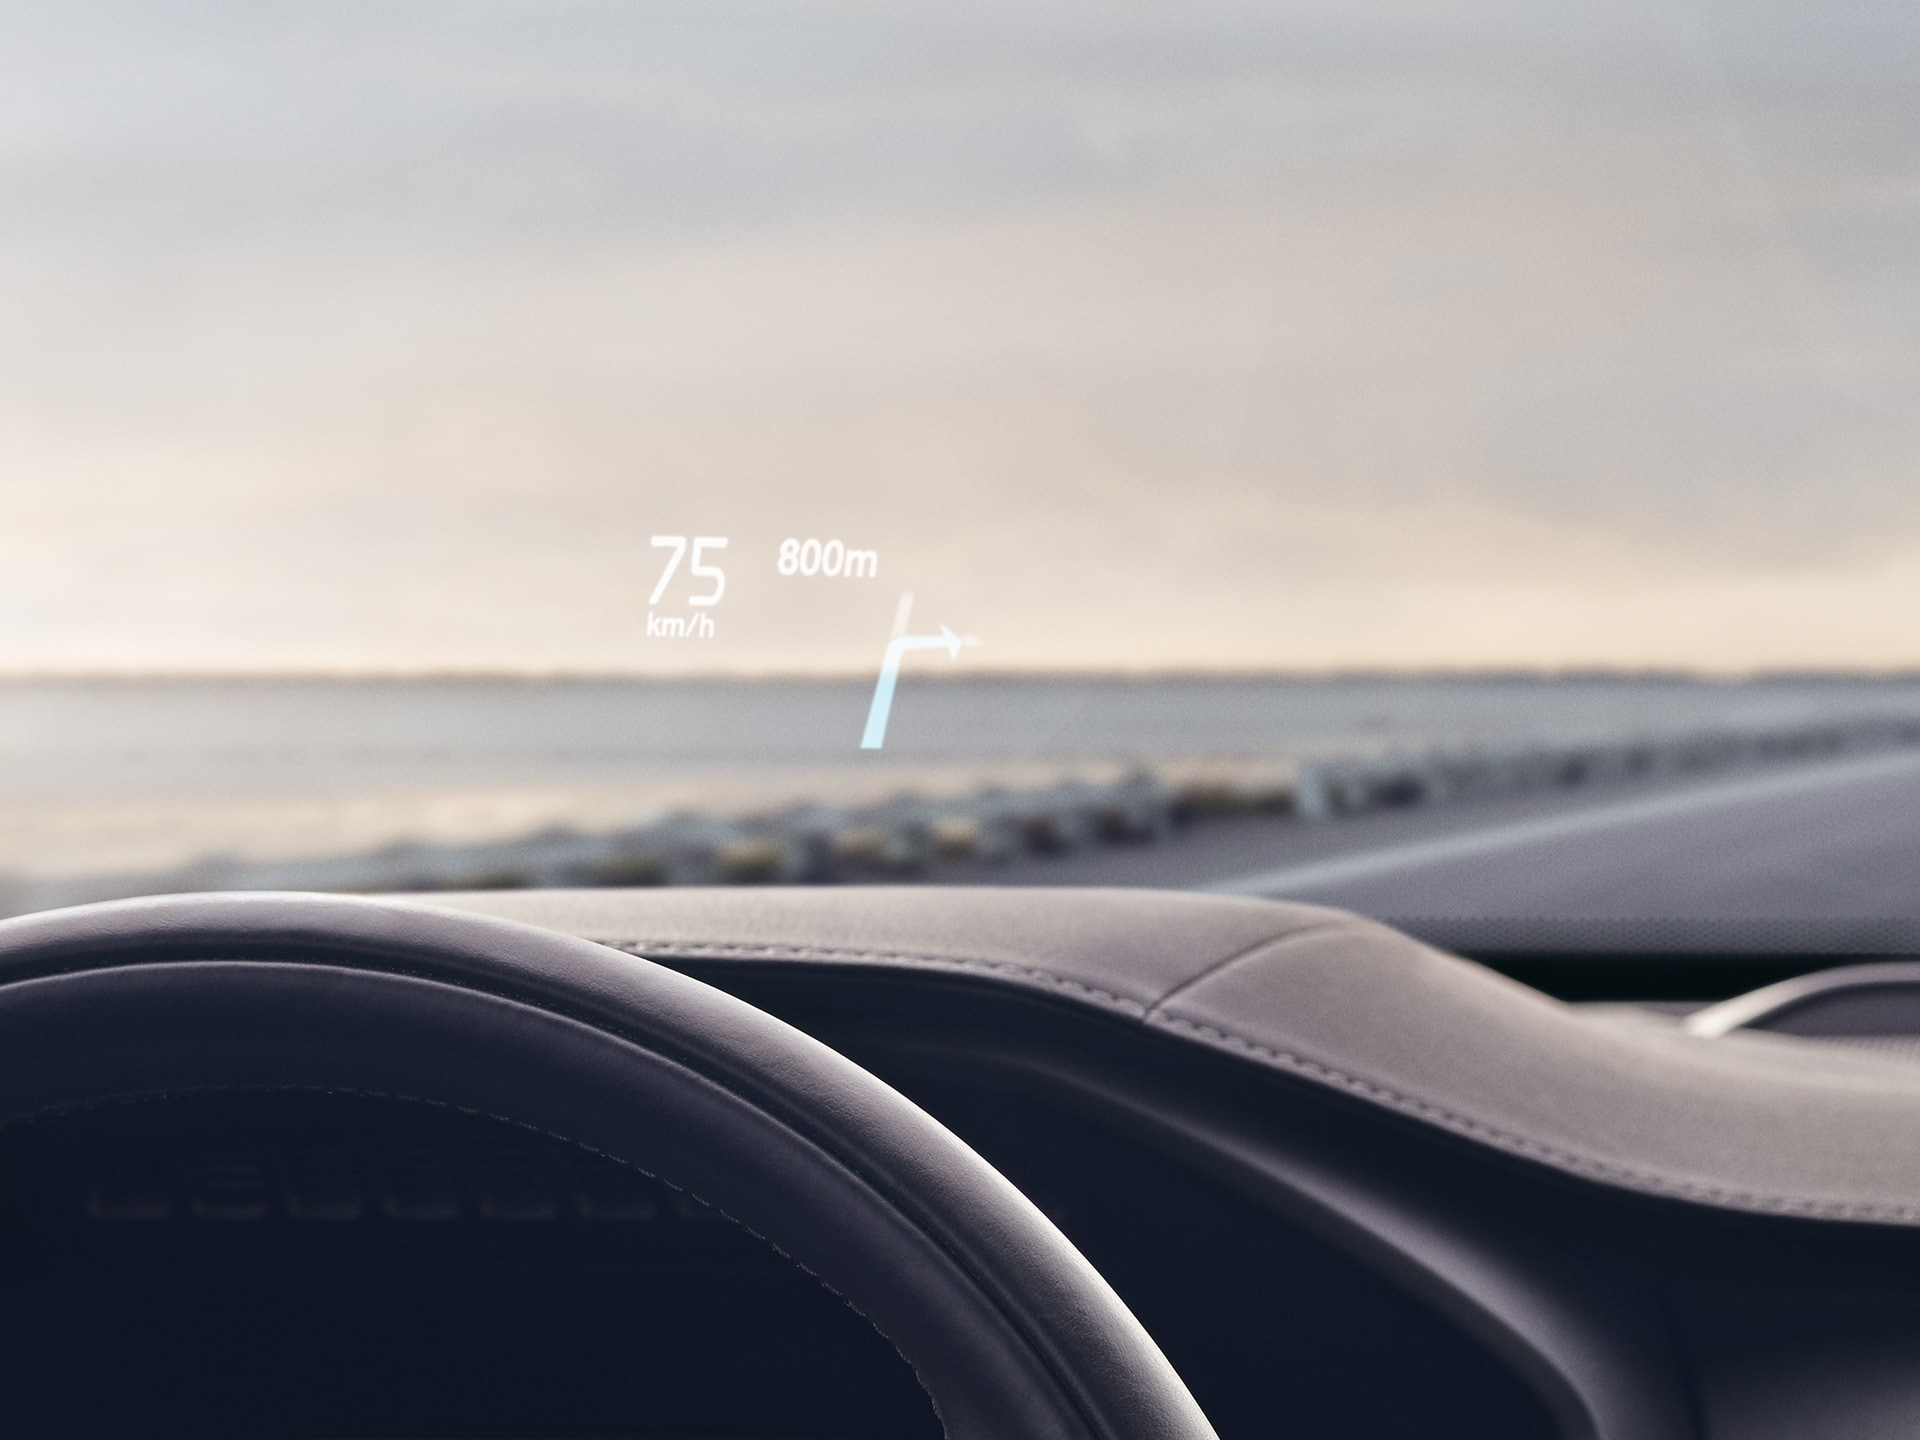 Inside a Volvo, driving speed displayed on the windshield